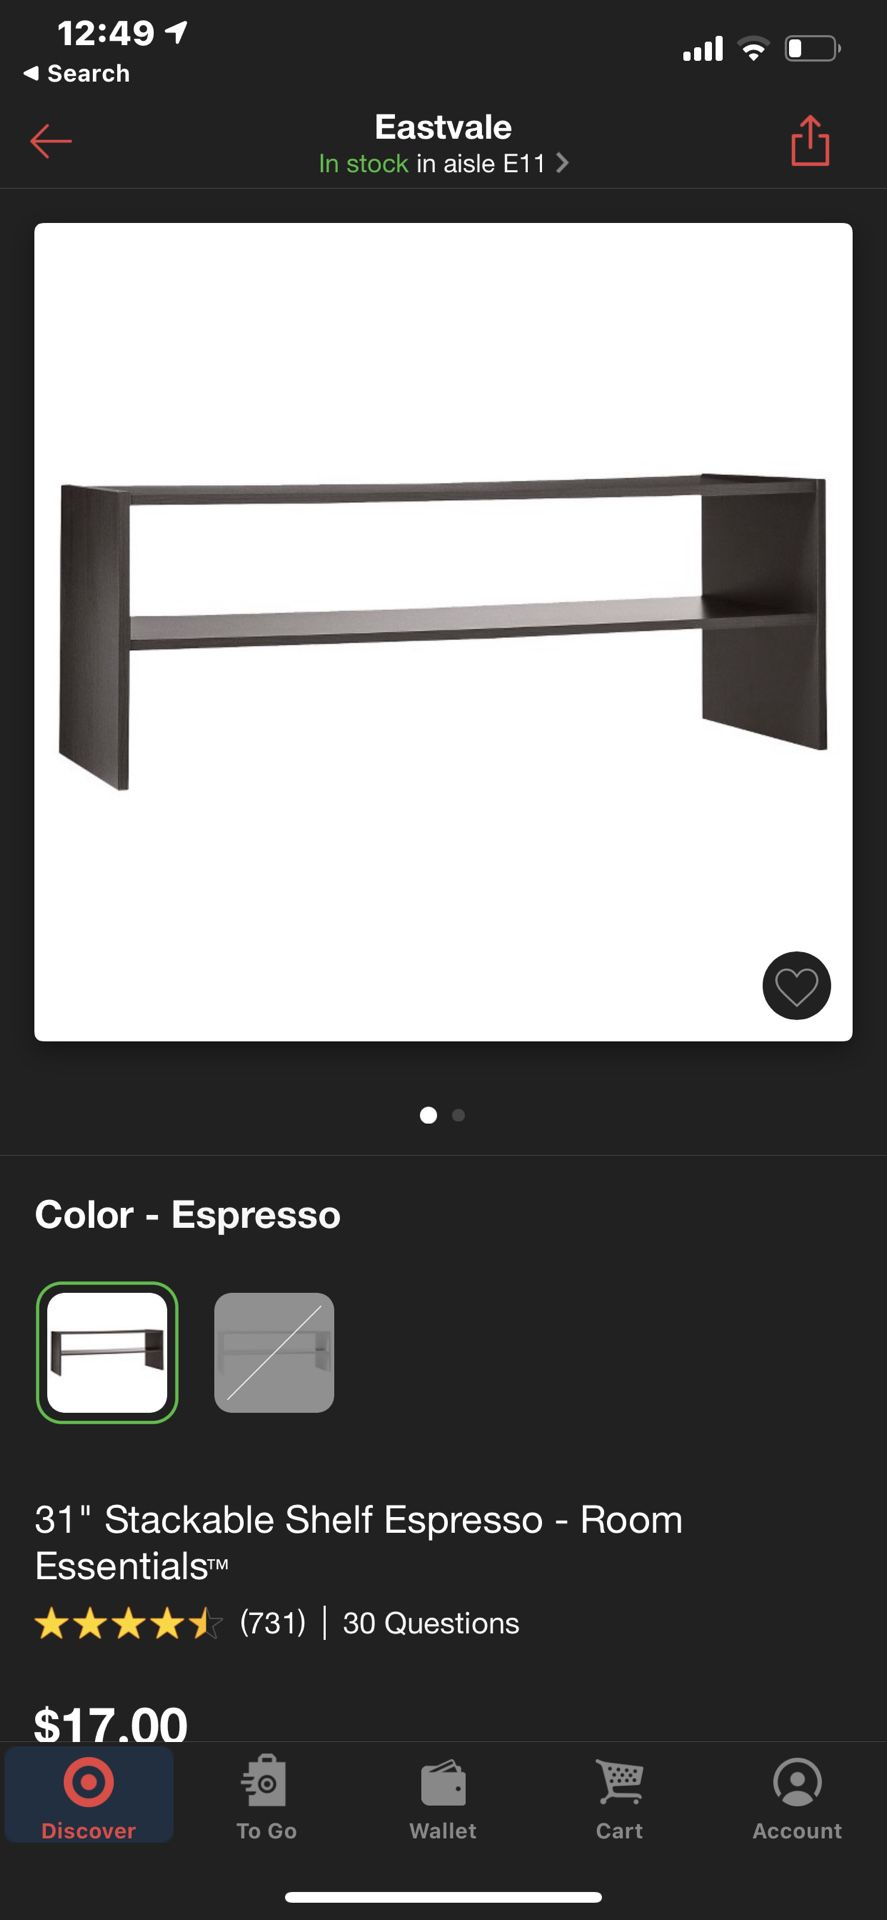 31 inch stackable south espresso will essentials Currently and Retails for $17.00